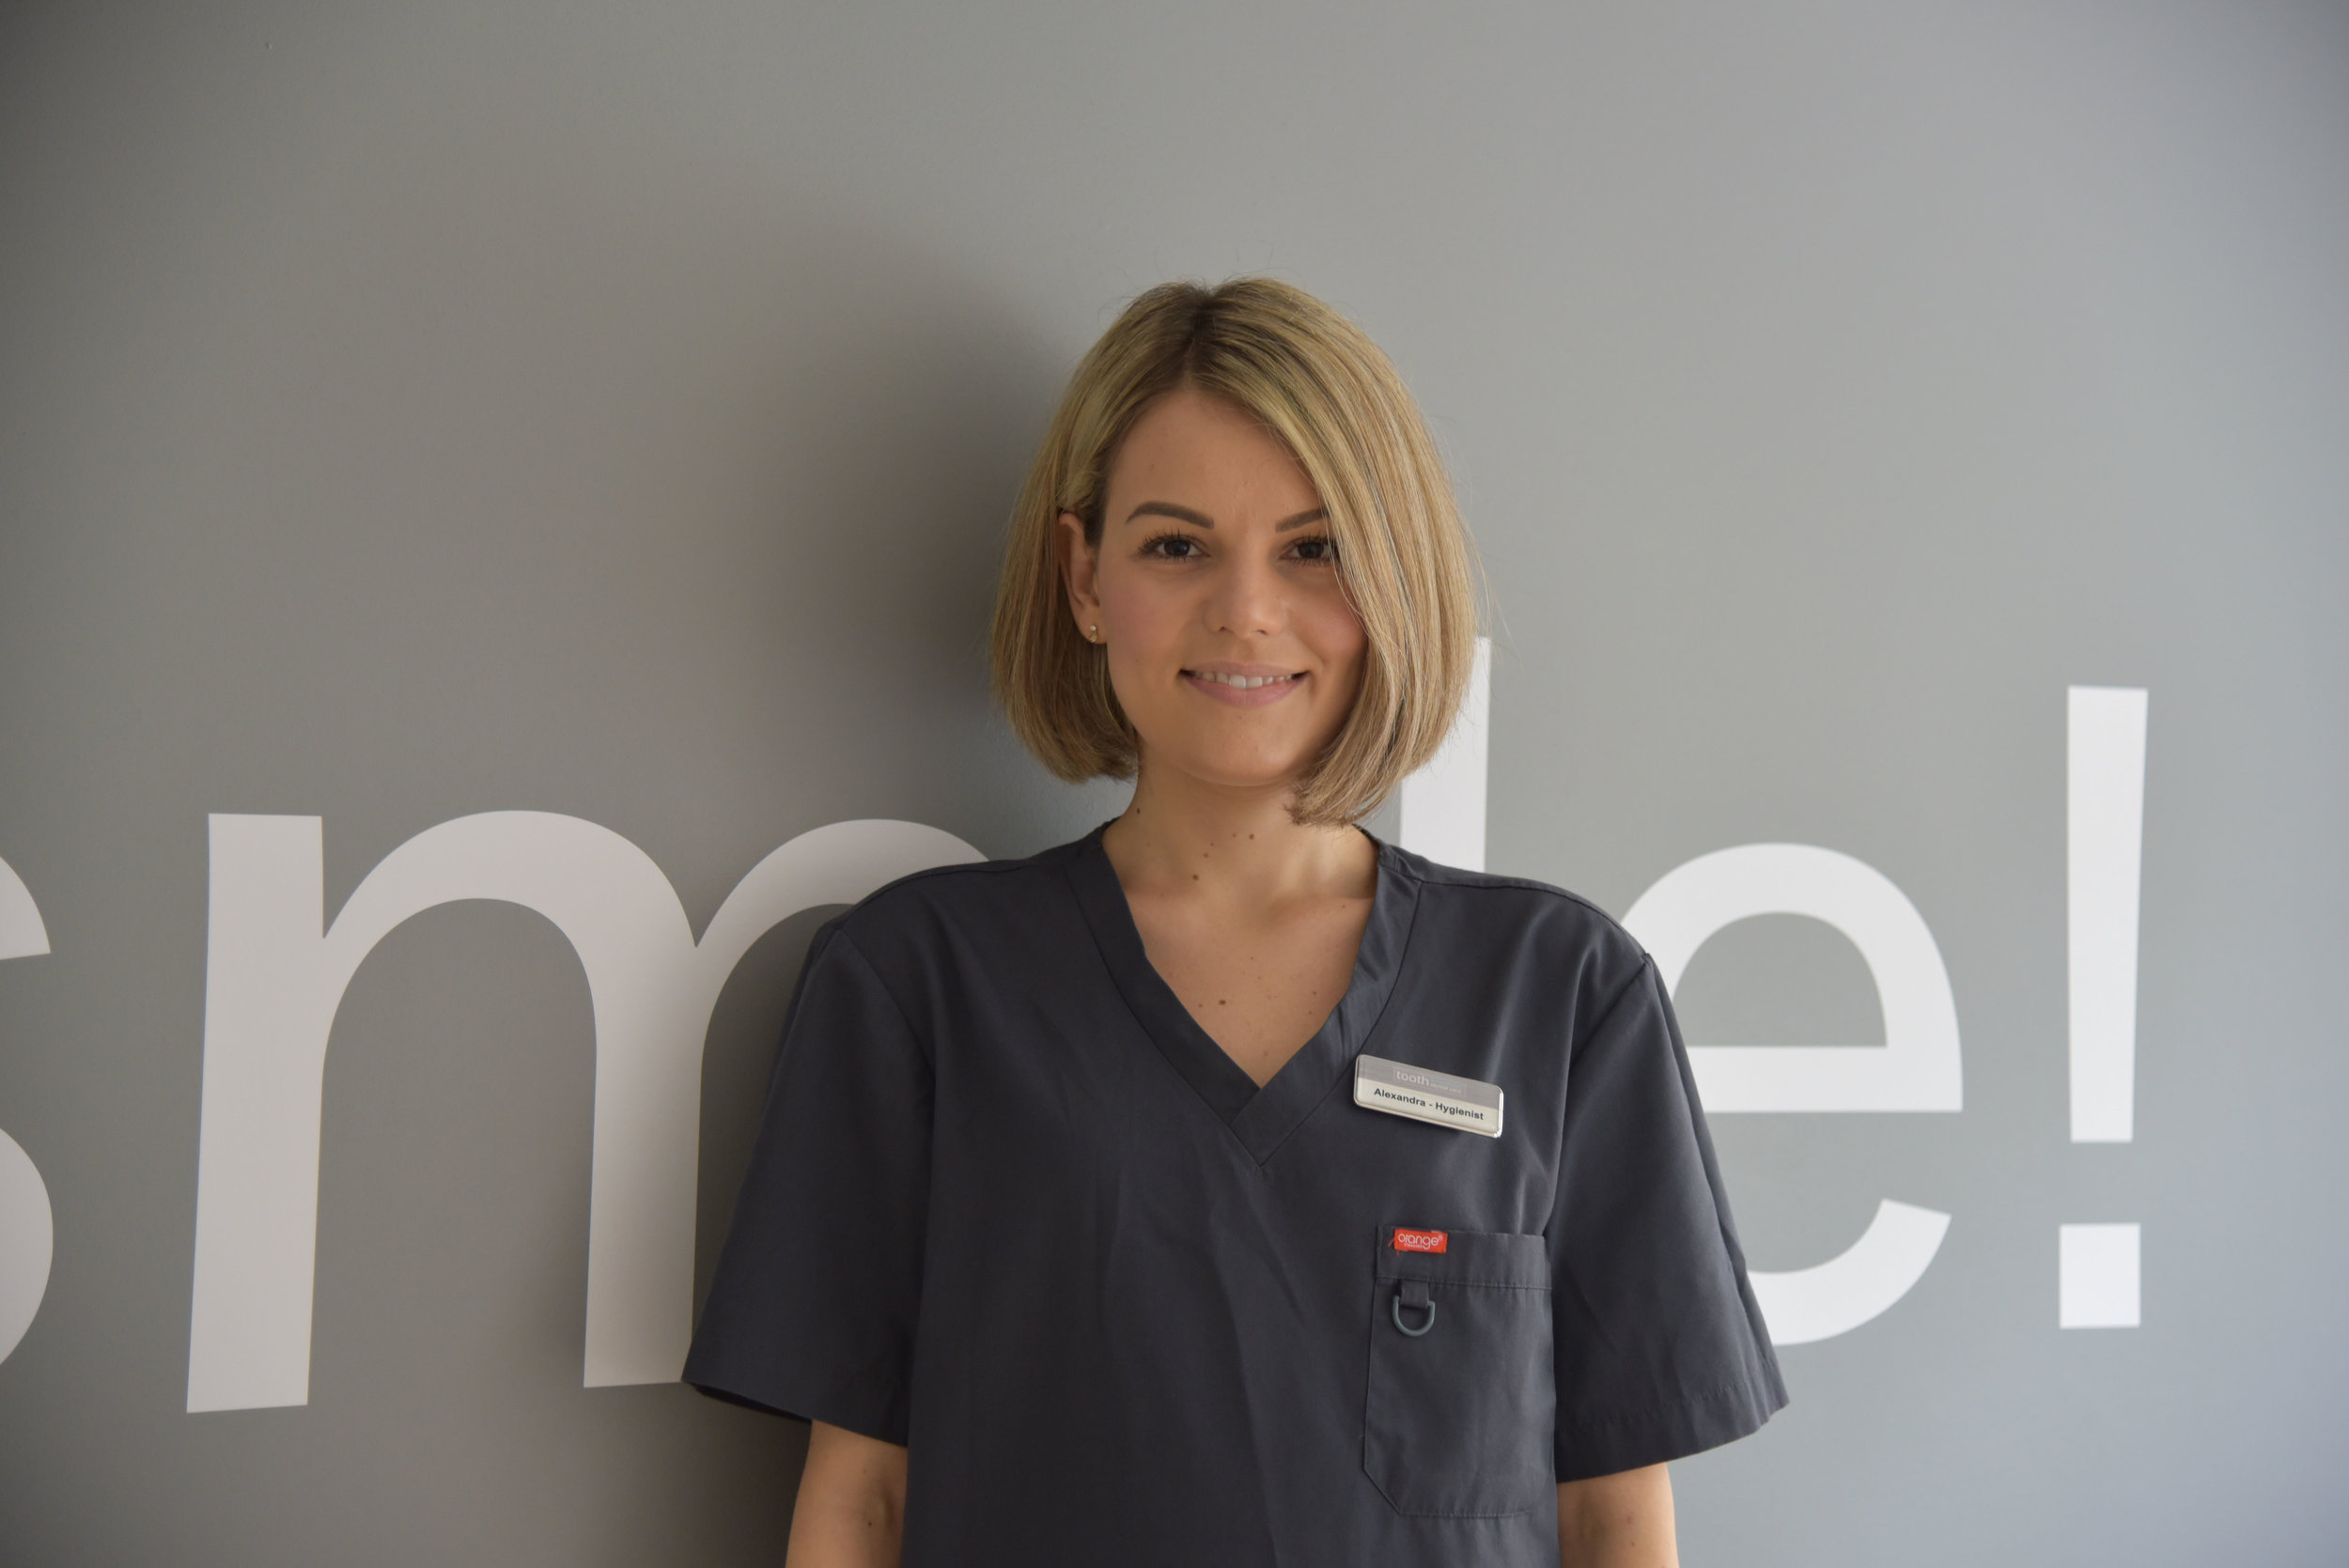 ALEXANDRA GILMEANU, DENTAL HYGIENIST AND THERAPIST, GDC No. 251536   Diploma in Dental Hygiene and Therapy, RCS England, Nat. Dip in Dental Nursing, NEBDN  Alexandra is a qualified Dental Hygienist and Therapist with experience working across a variety of practices in Greater London and the East of England. Alexandra is passionate about educating on, creating and maintaining patient oral health and has a positive and bubbly attitude that patients love. Alexandra's journey began as a trainee nurse in Richmond, soon after becoming a Qualified Dental Nurse and then going on to graduate Dental Hygiene and Therapy at the Royal College of Surgeons in 2018.